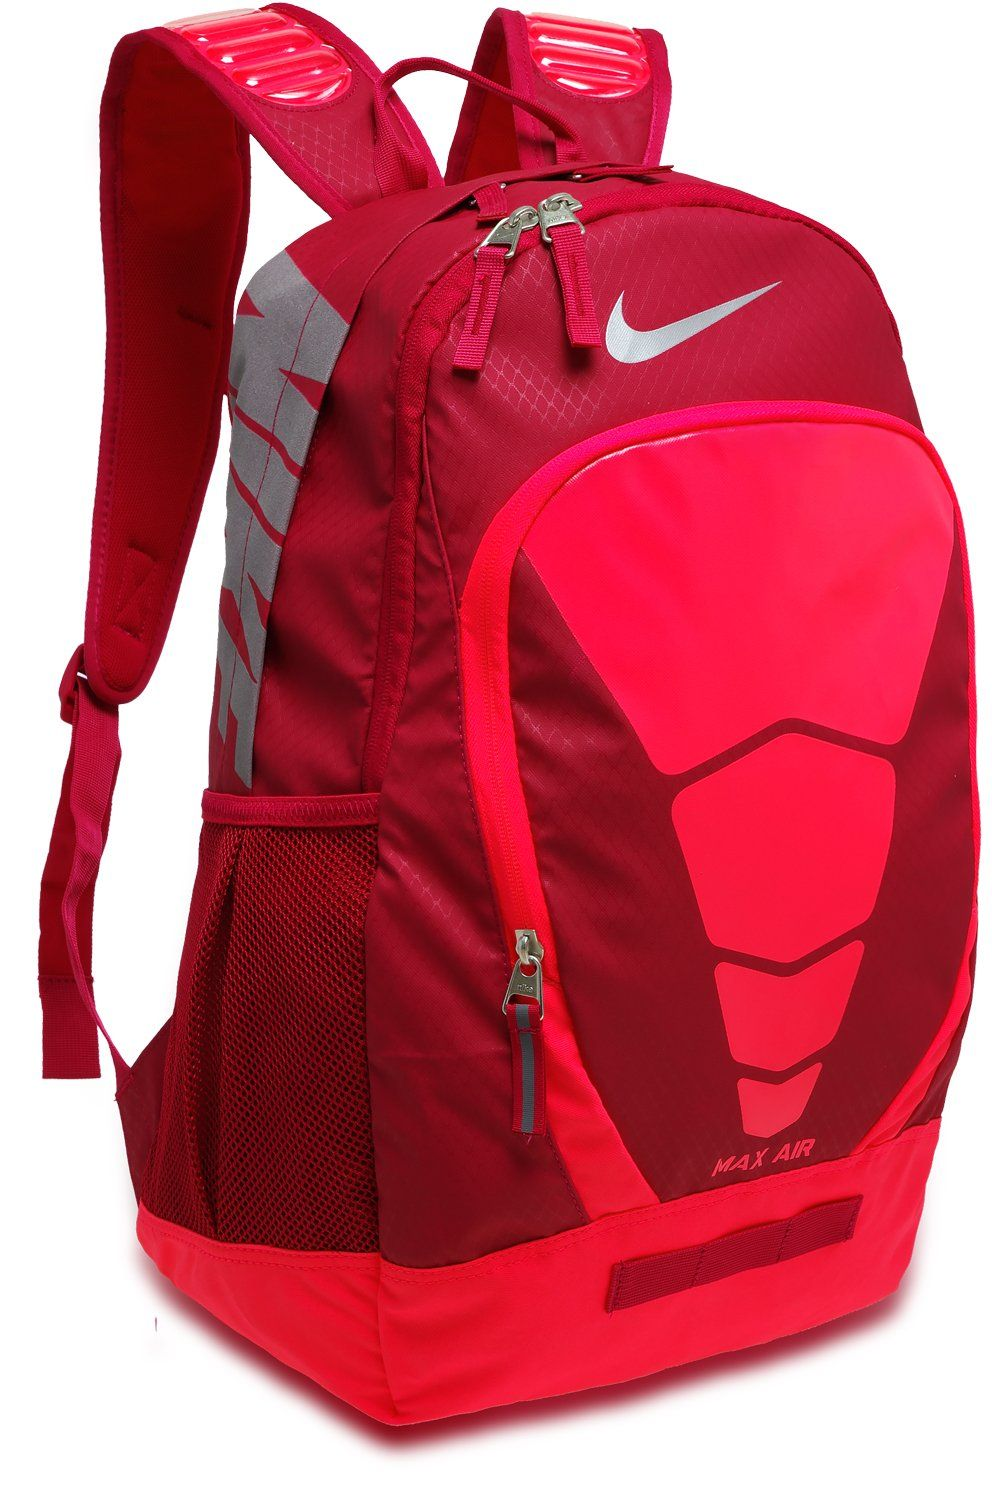 b5a77d5a1d Nike MAX AIR Unisex (L) 34 Liters Backpack Bookbag BA4883-611